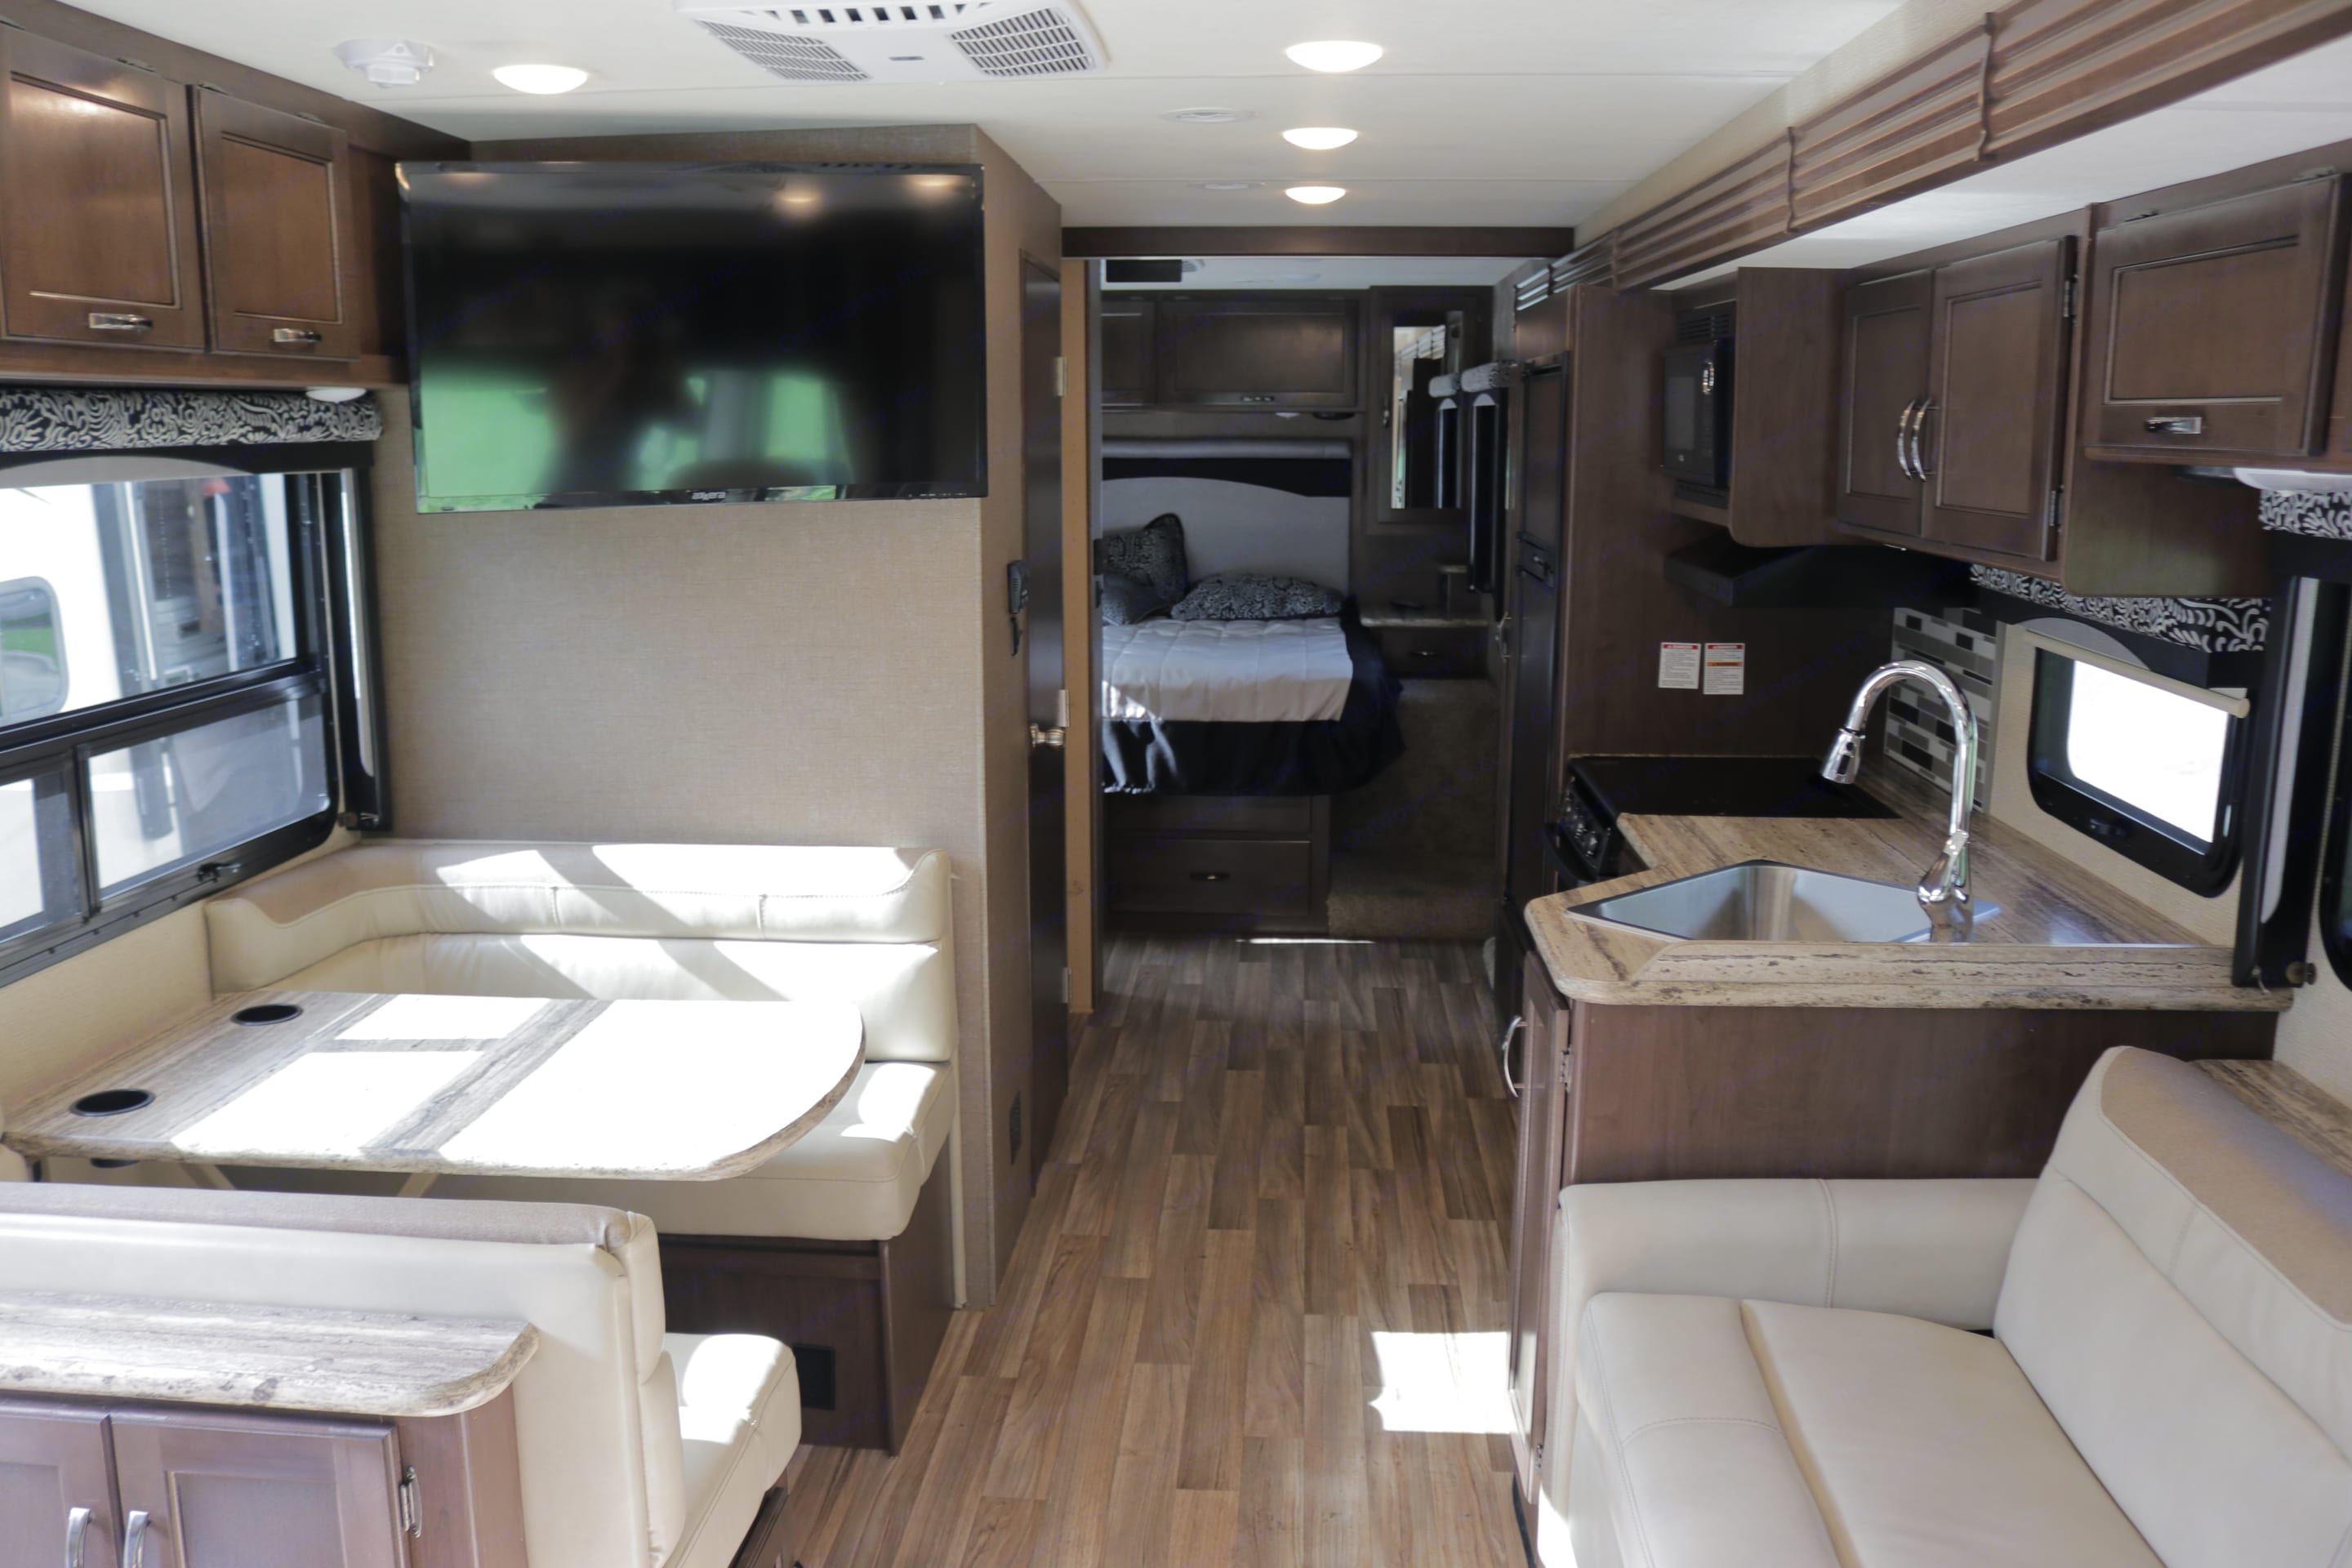 View from the front of the RV to the back. Thor Motor Coach A.C.E 2018